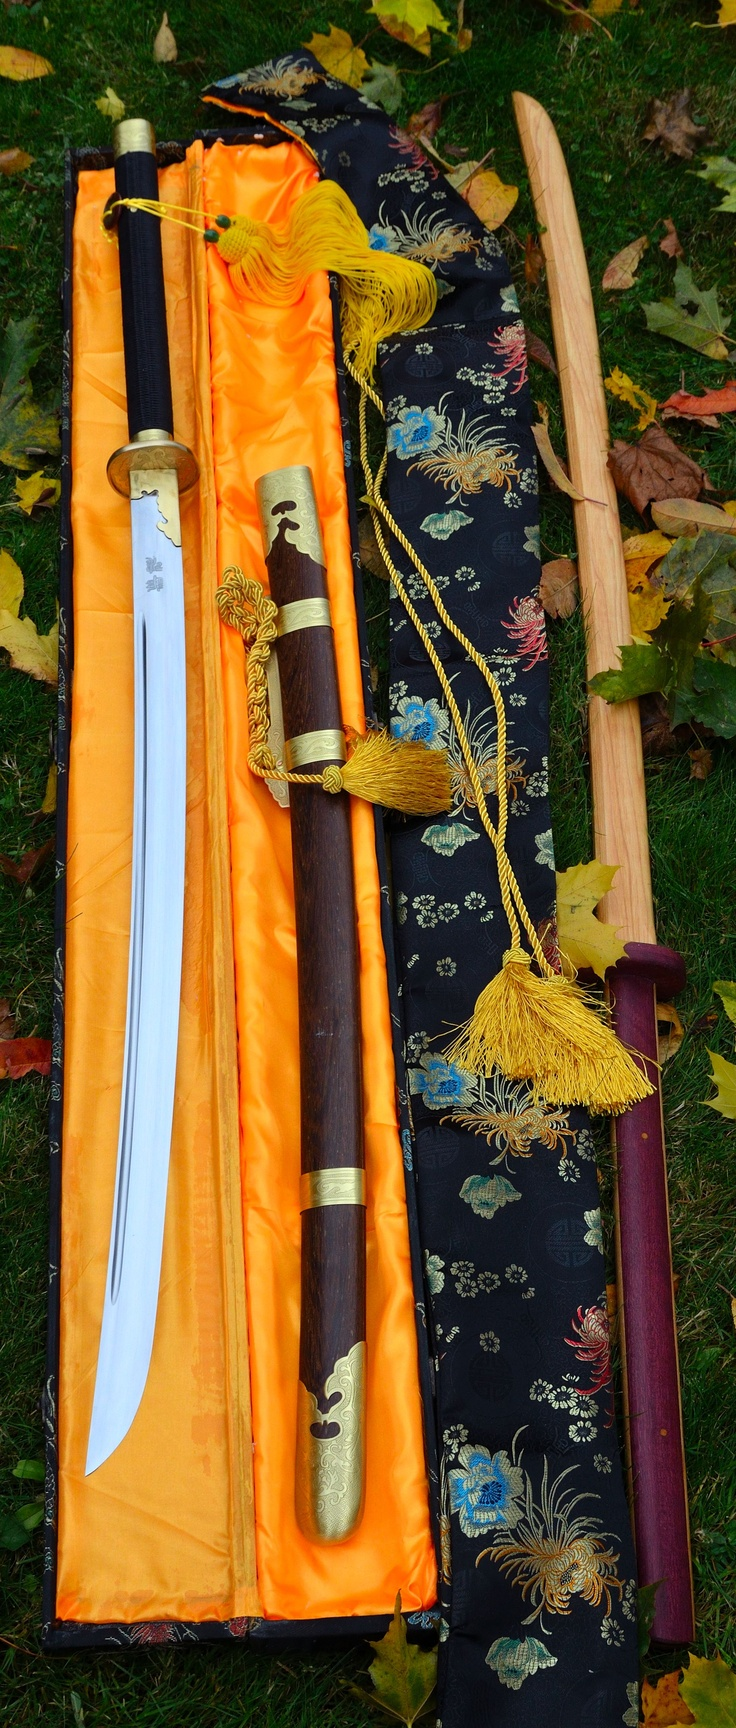 Miao Dao from Zhi Sword forge in Longquan China.  Wooden training Chang Dao with purple-heart handle from Raven.  New tools this autumn. .kwallbridge